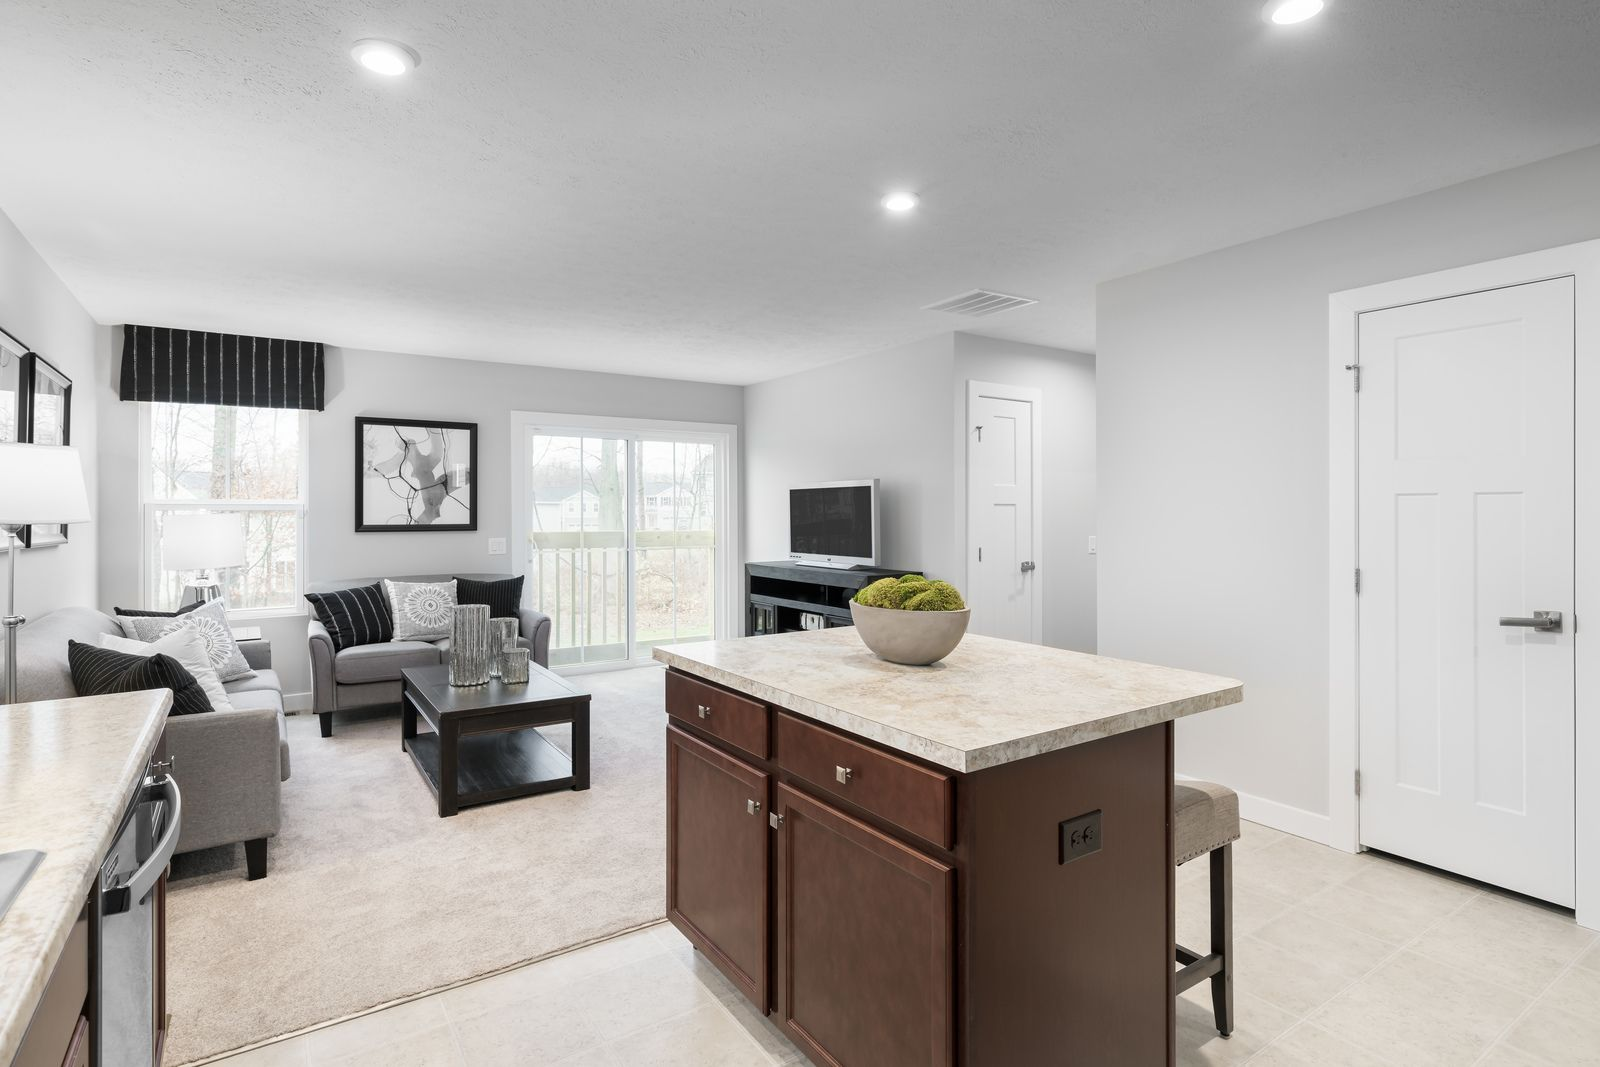 Kitchen featured in the Aruba Bay By Ryan Homes in Dover, DE